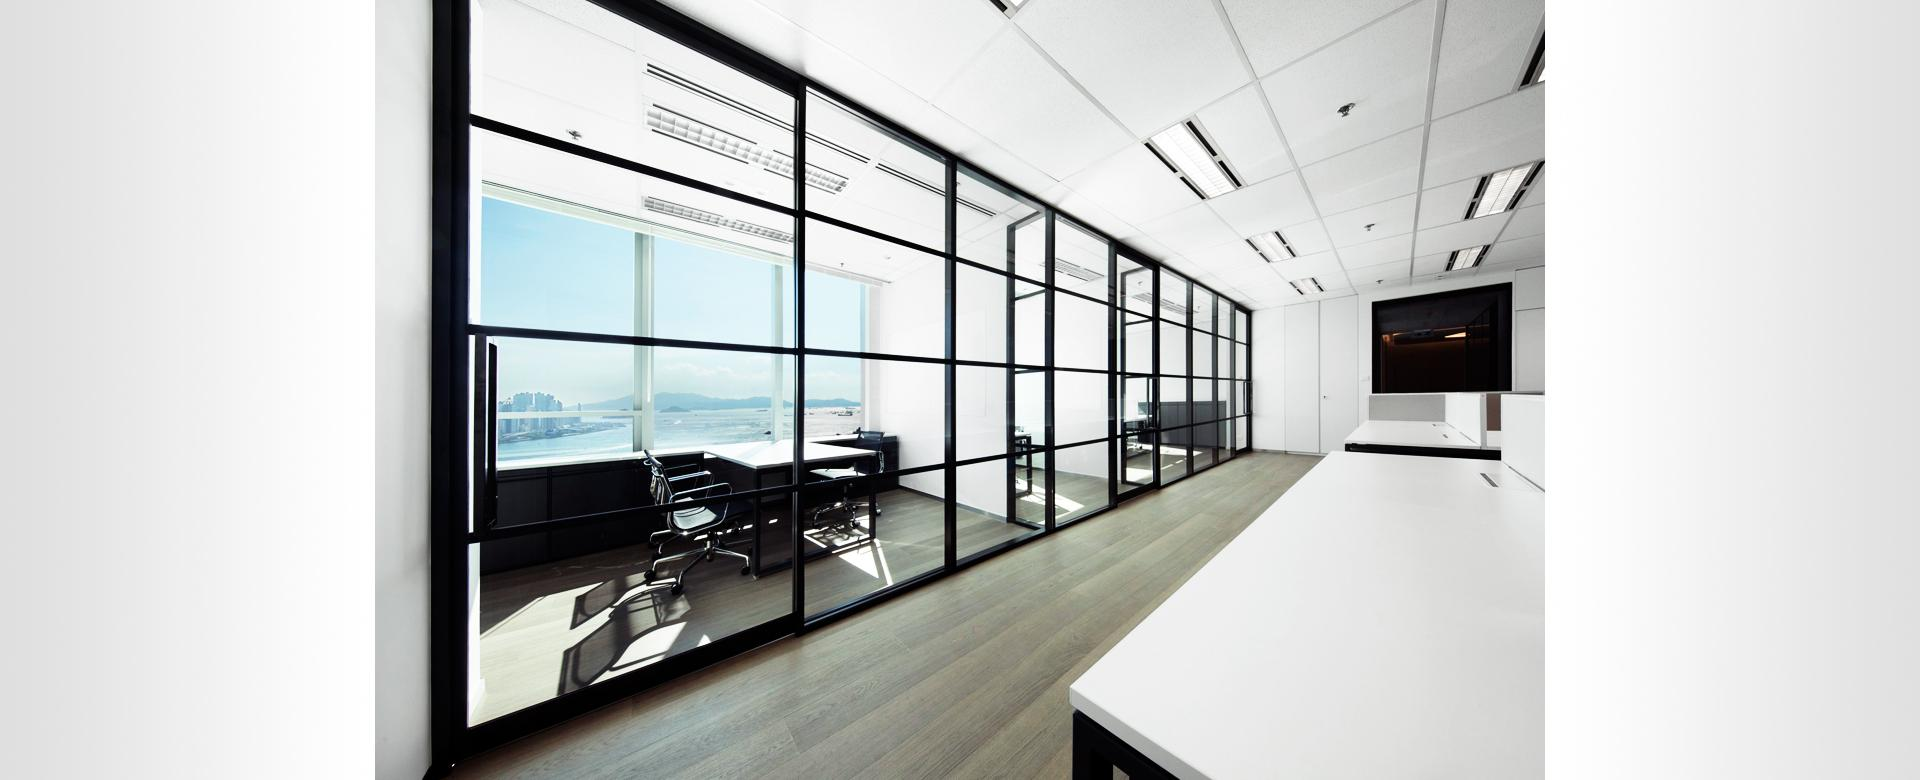 Office partitions, movable office partitions and interior fit-out